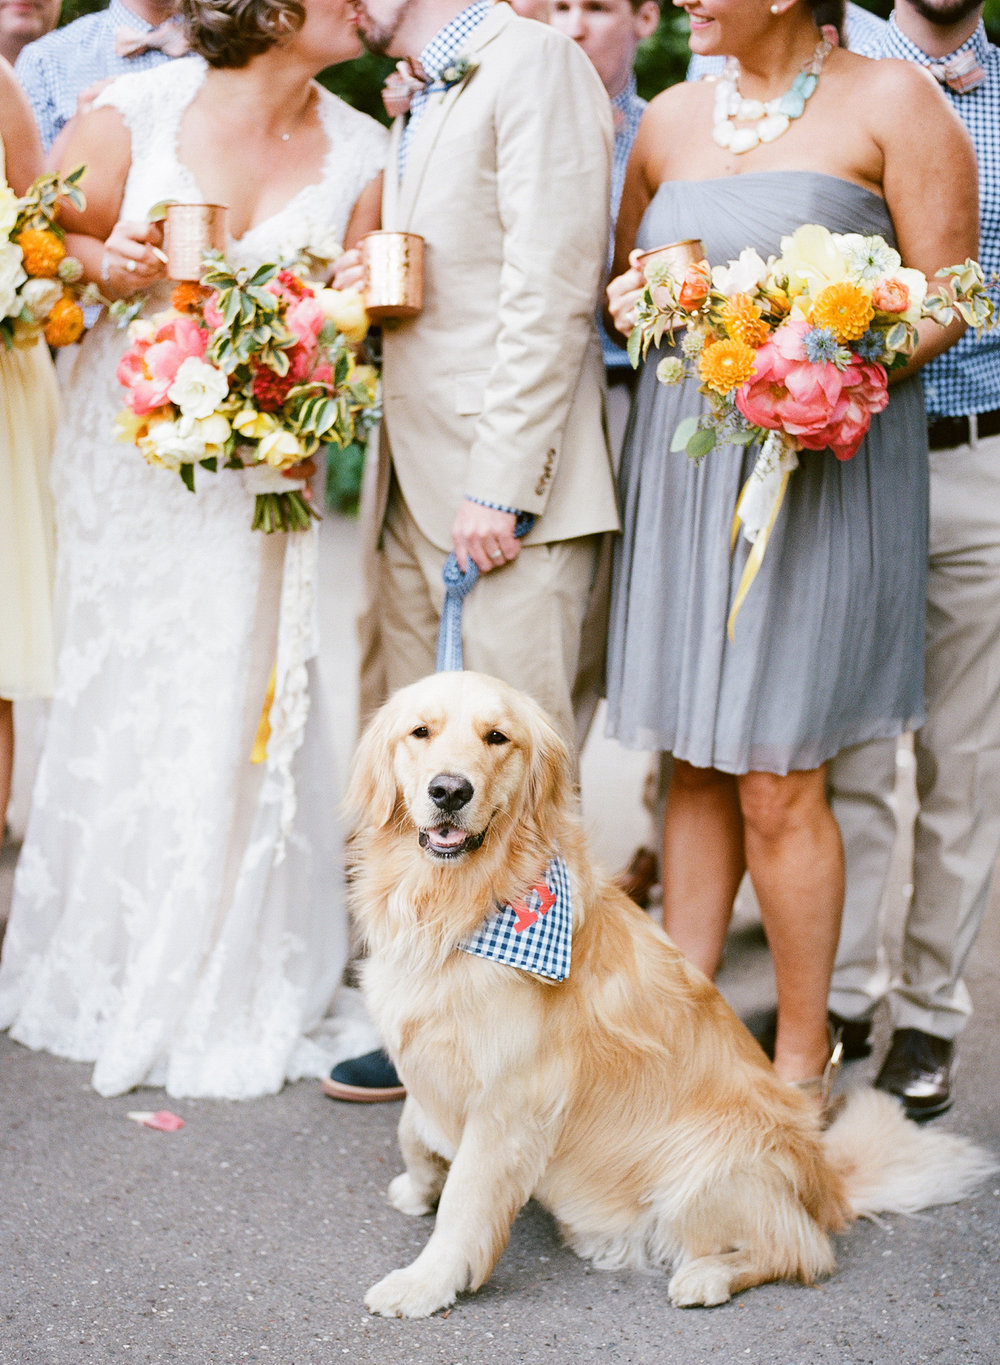 25-dog-at-wedding-preppy.jpg